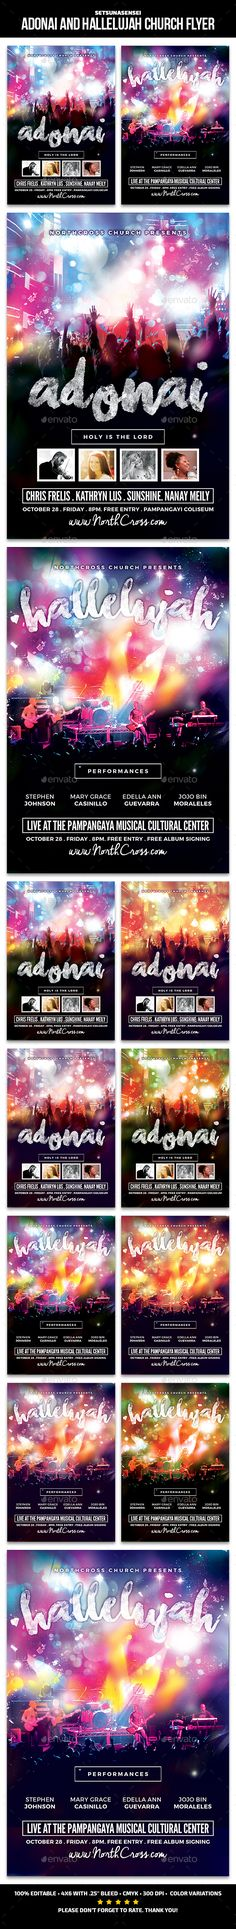 Adonai and Hallelujah Church Flyer — Photoshop PSD #praises and prayers #hallelujah • Available here → https://graphicriver.net/item/adonai-and-hallelujah-church-flyer/15518078?ref=pxcr